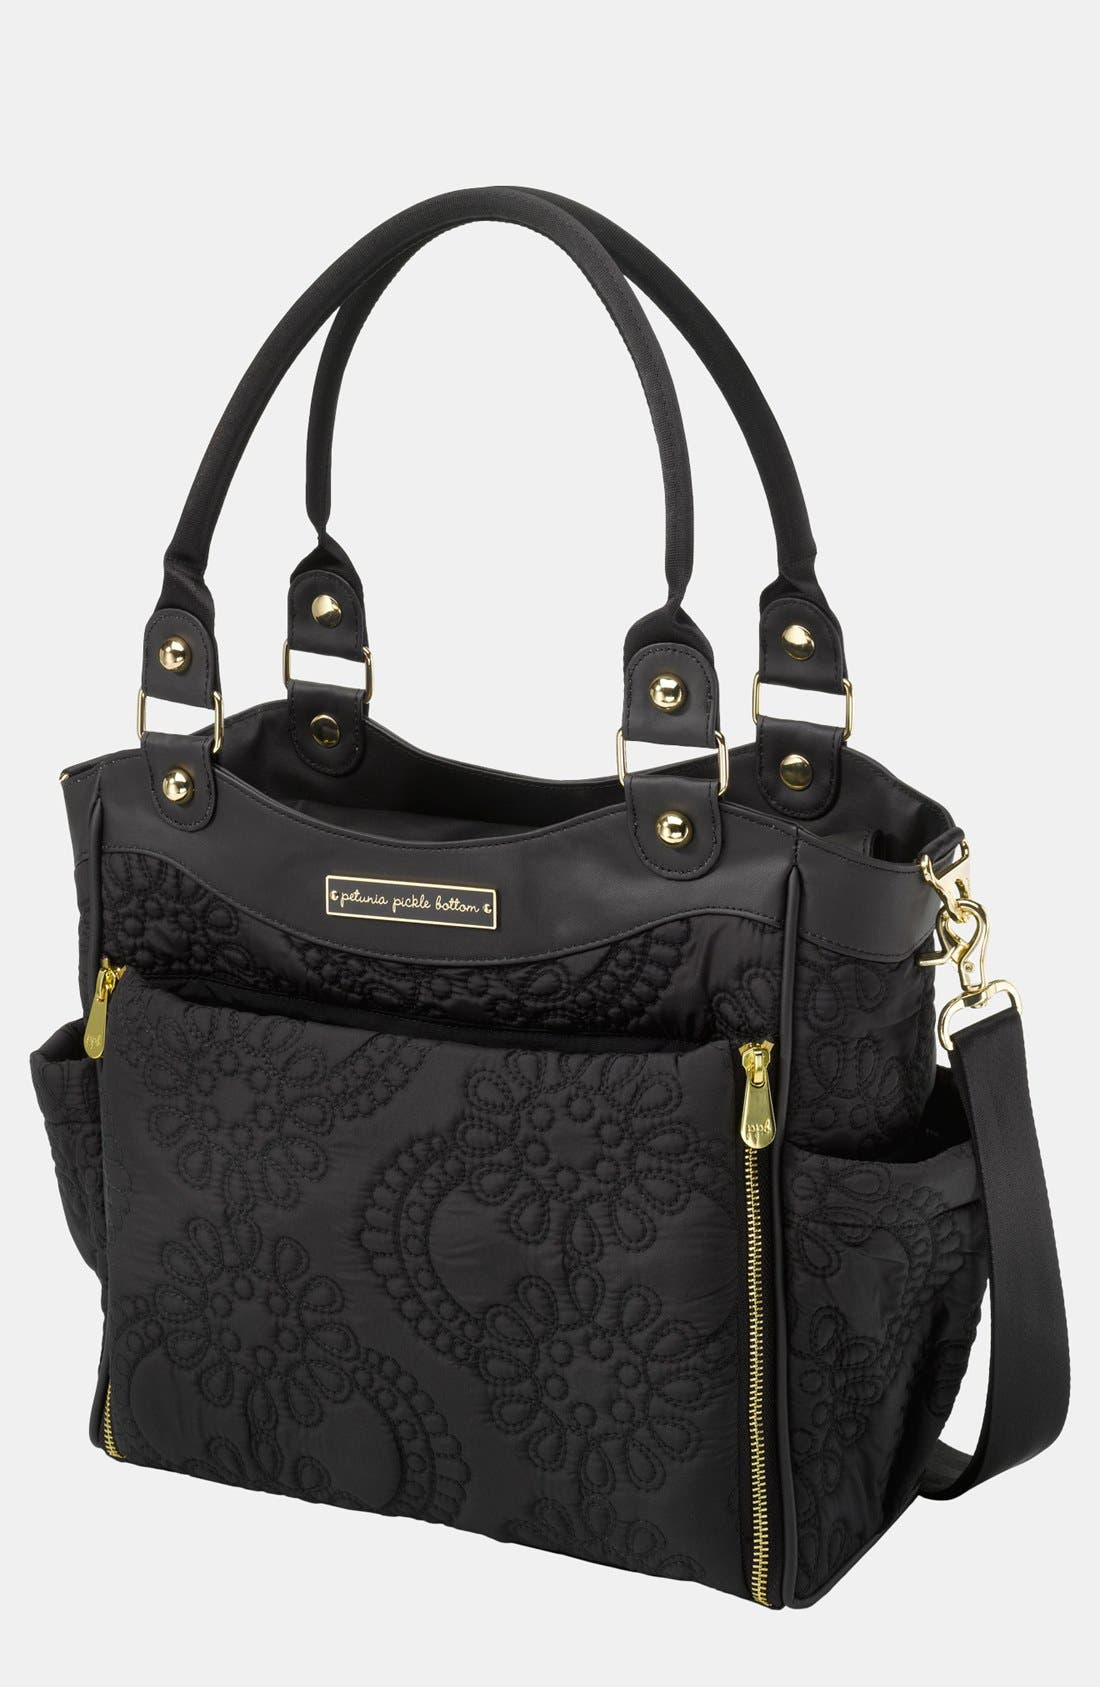 Alternate Image 1 Selected - Petunia Pickle Bottom 'City Carryall' Embossed Diaper Bag (Special Edition)